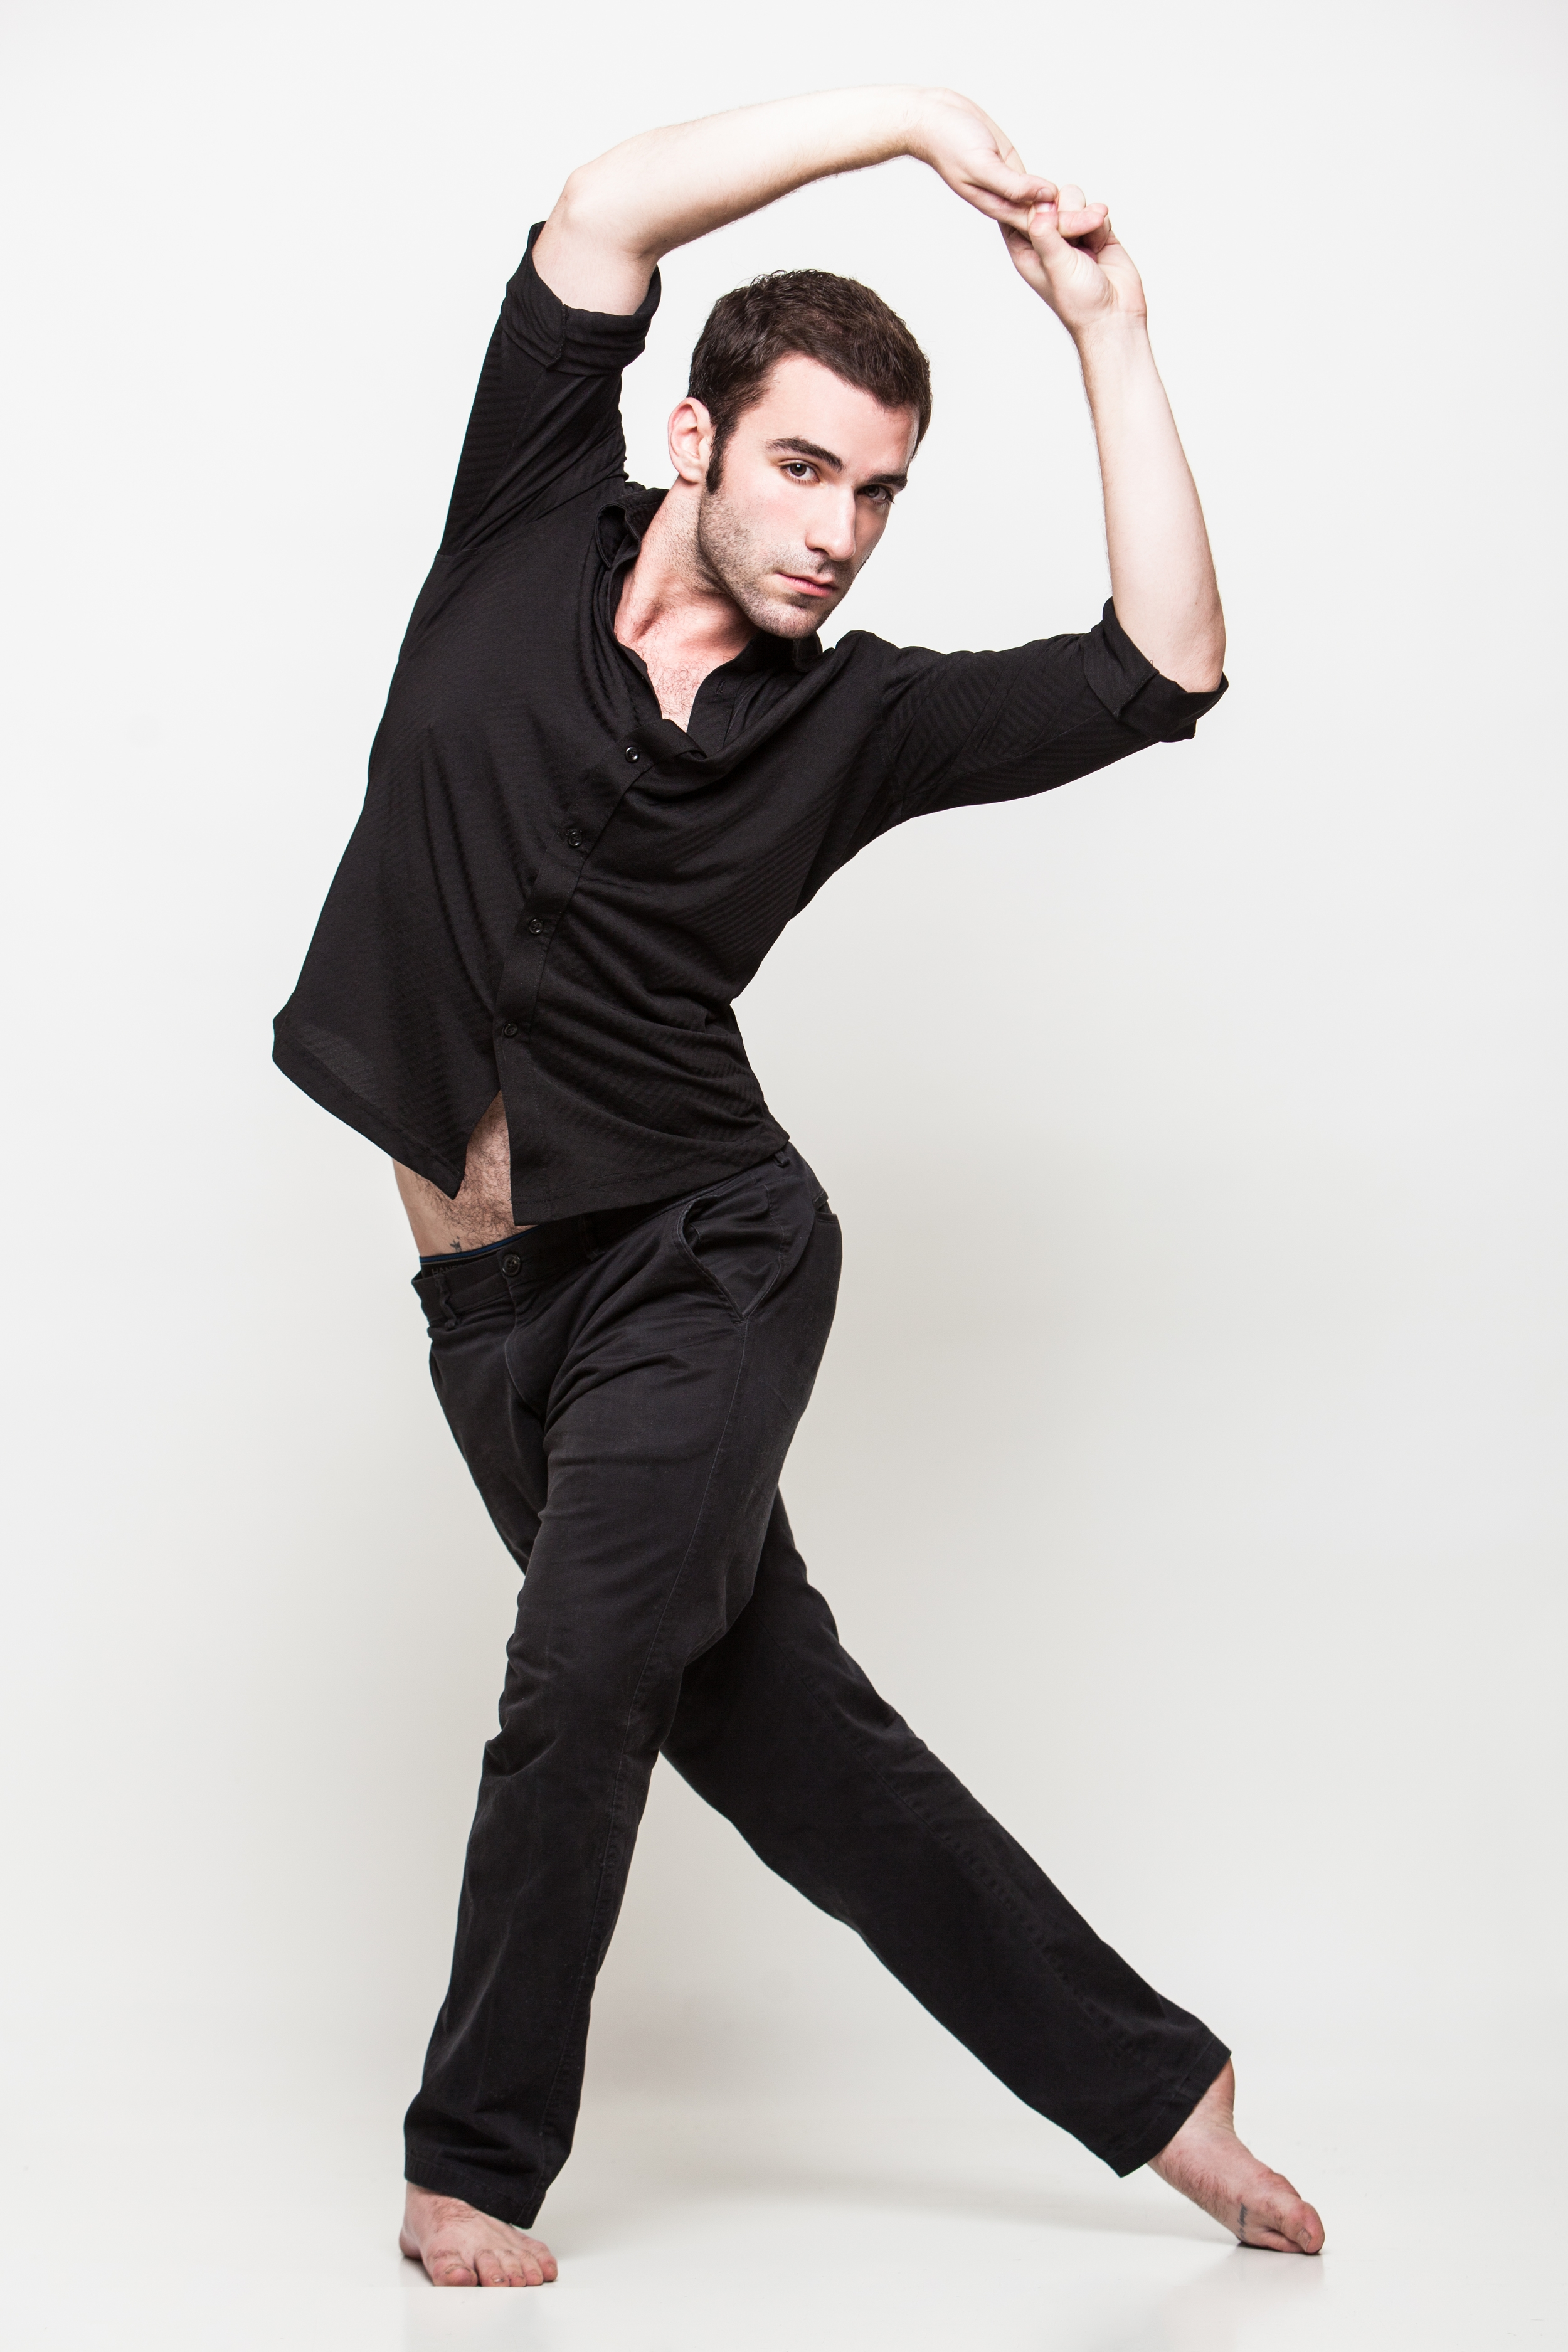 Photography by Vince Trupsin for RhetOracle Dance Company